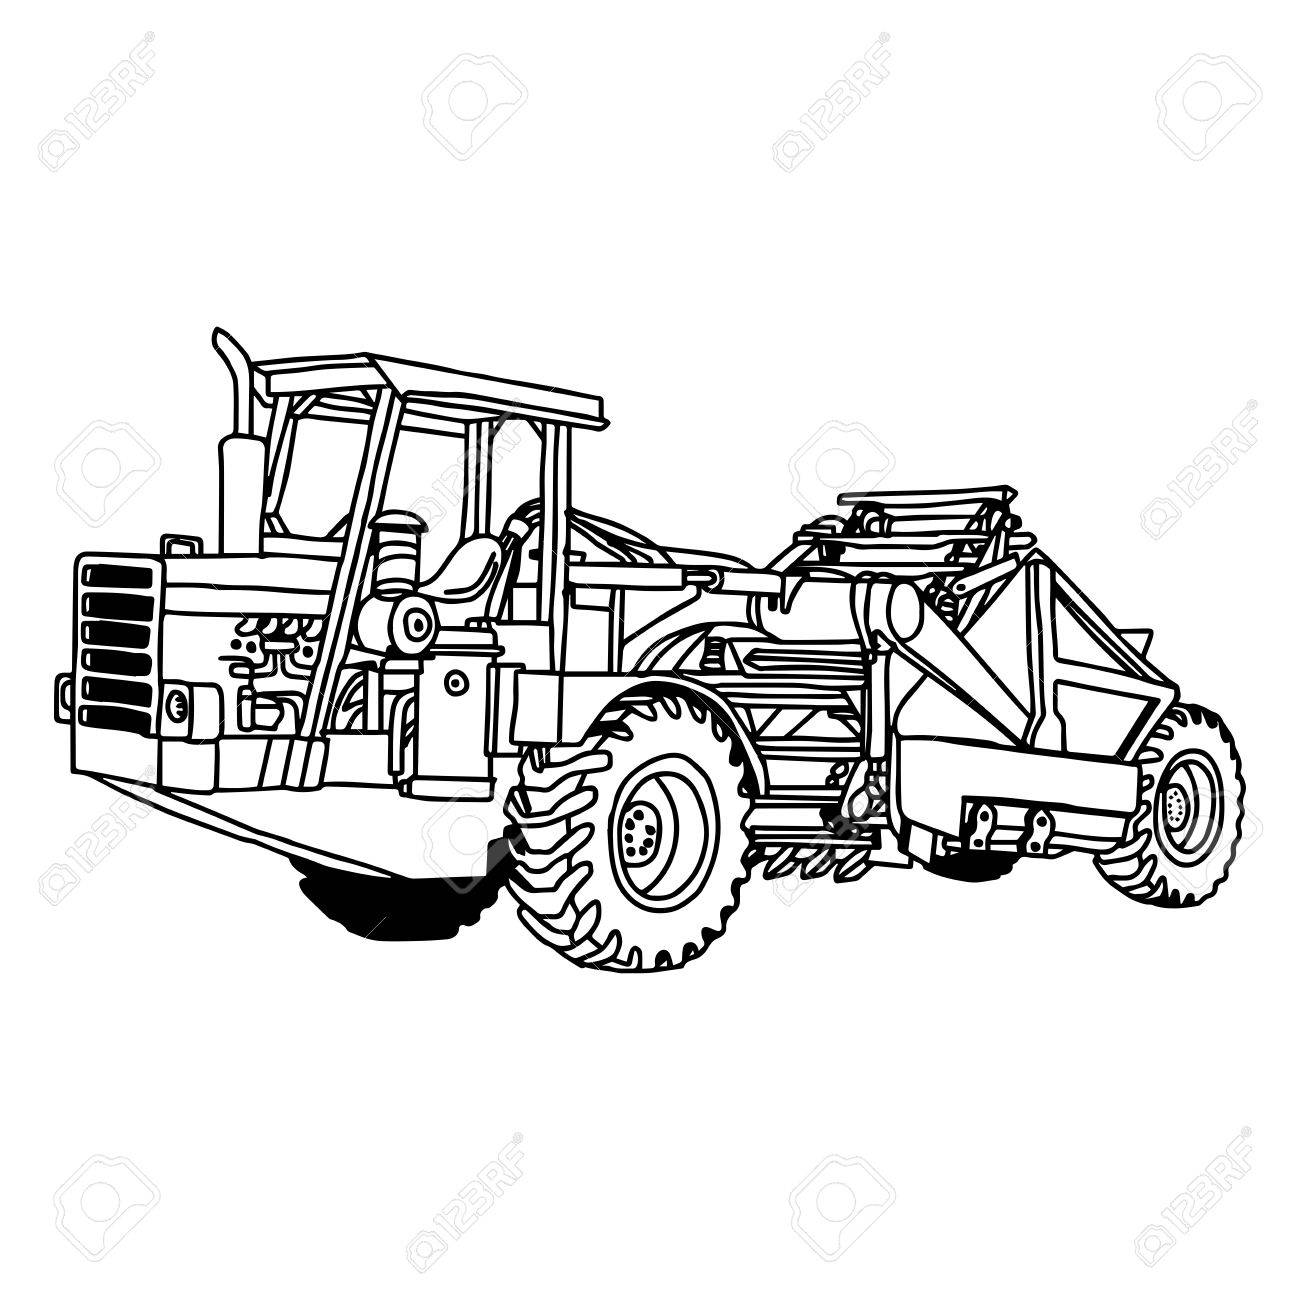 wheel loader drawing at getdrawings com